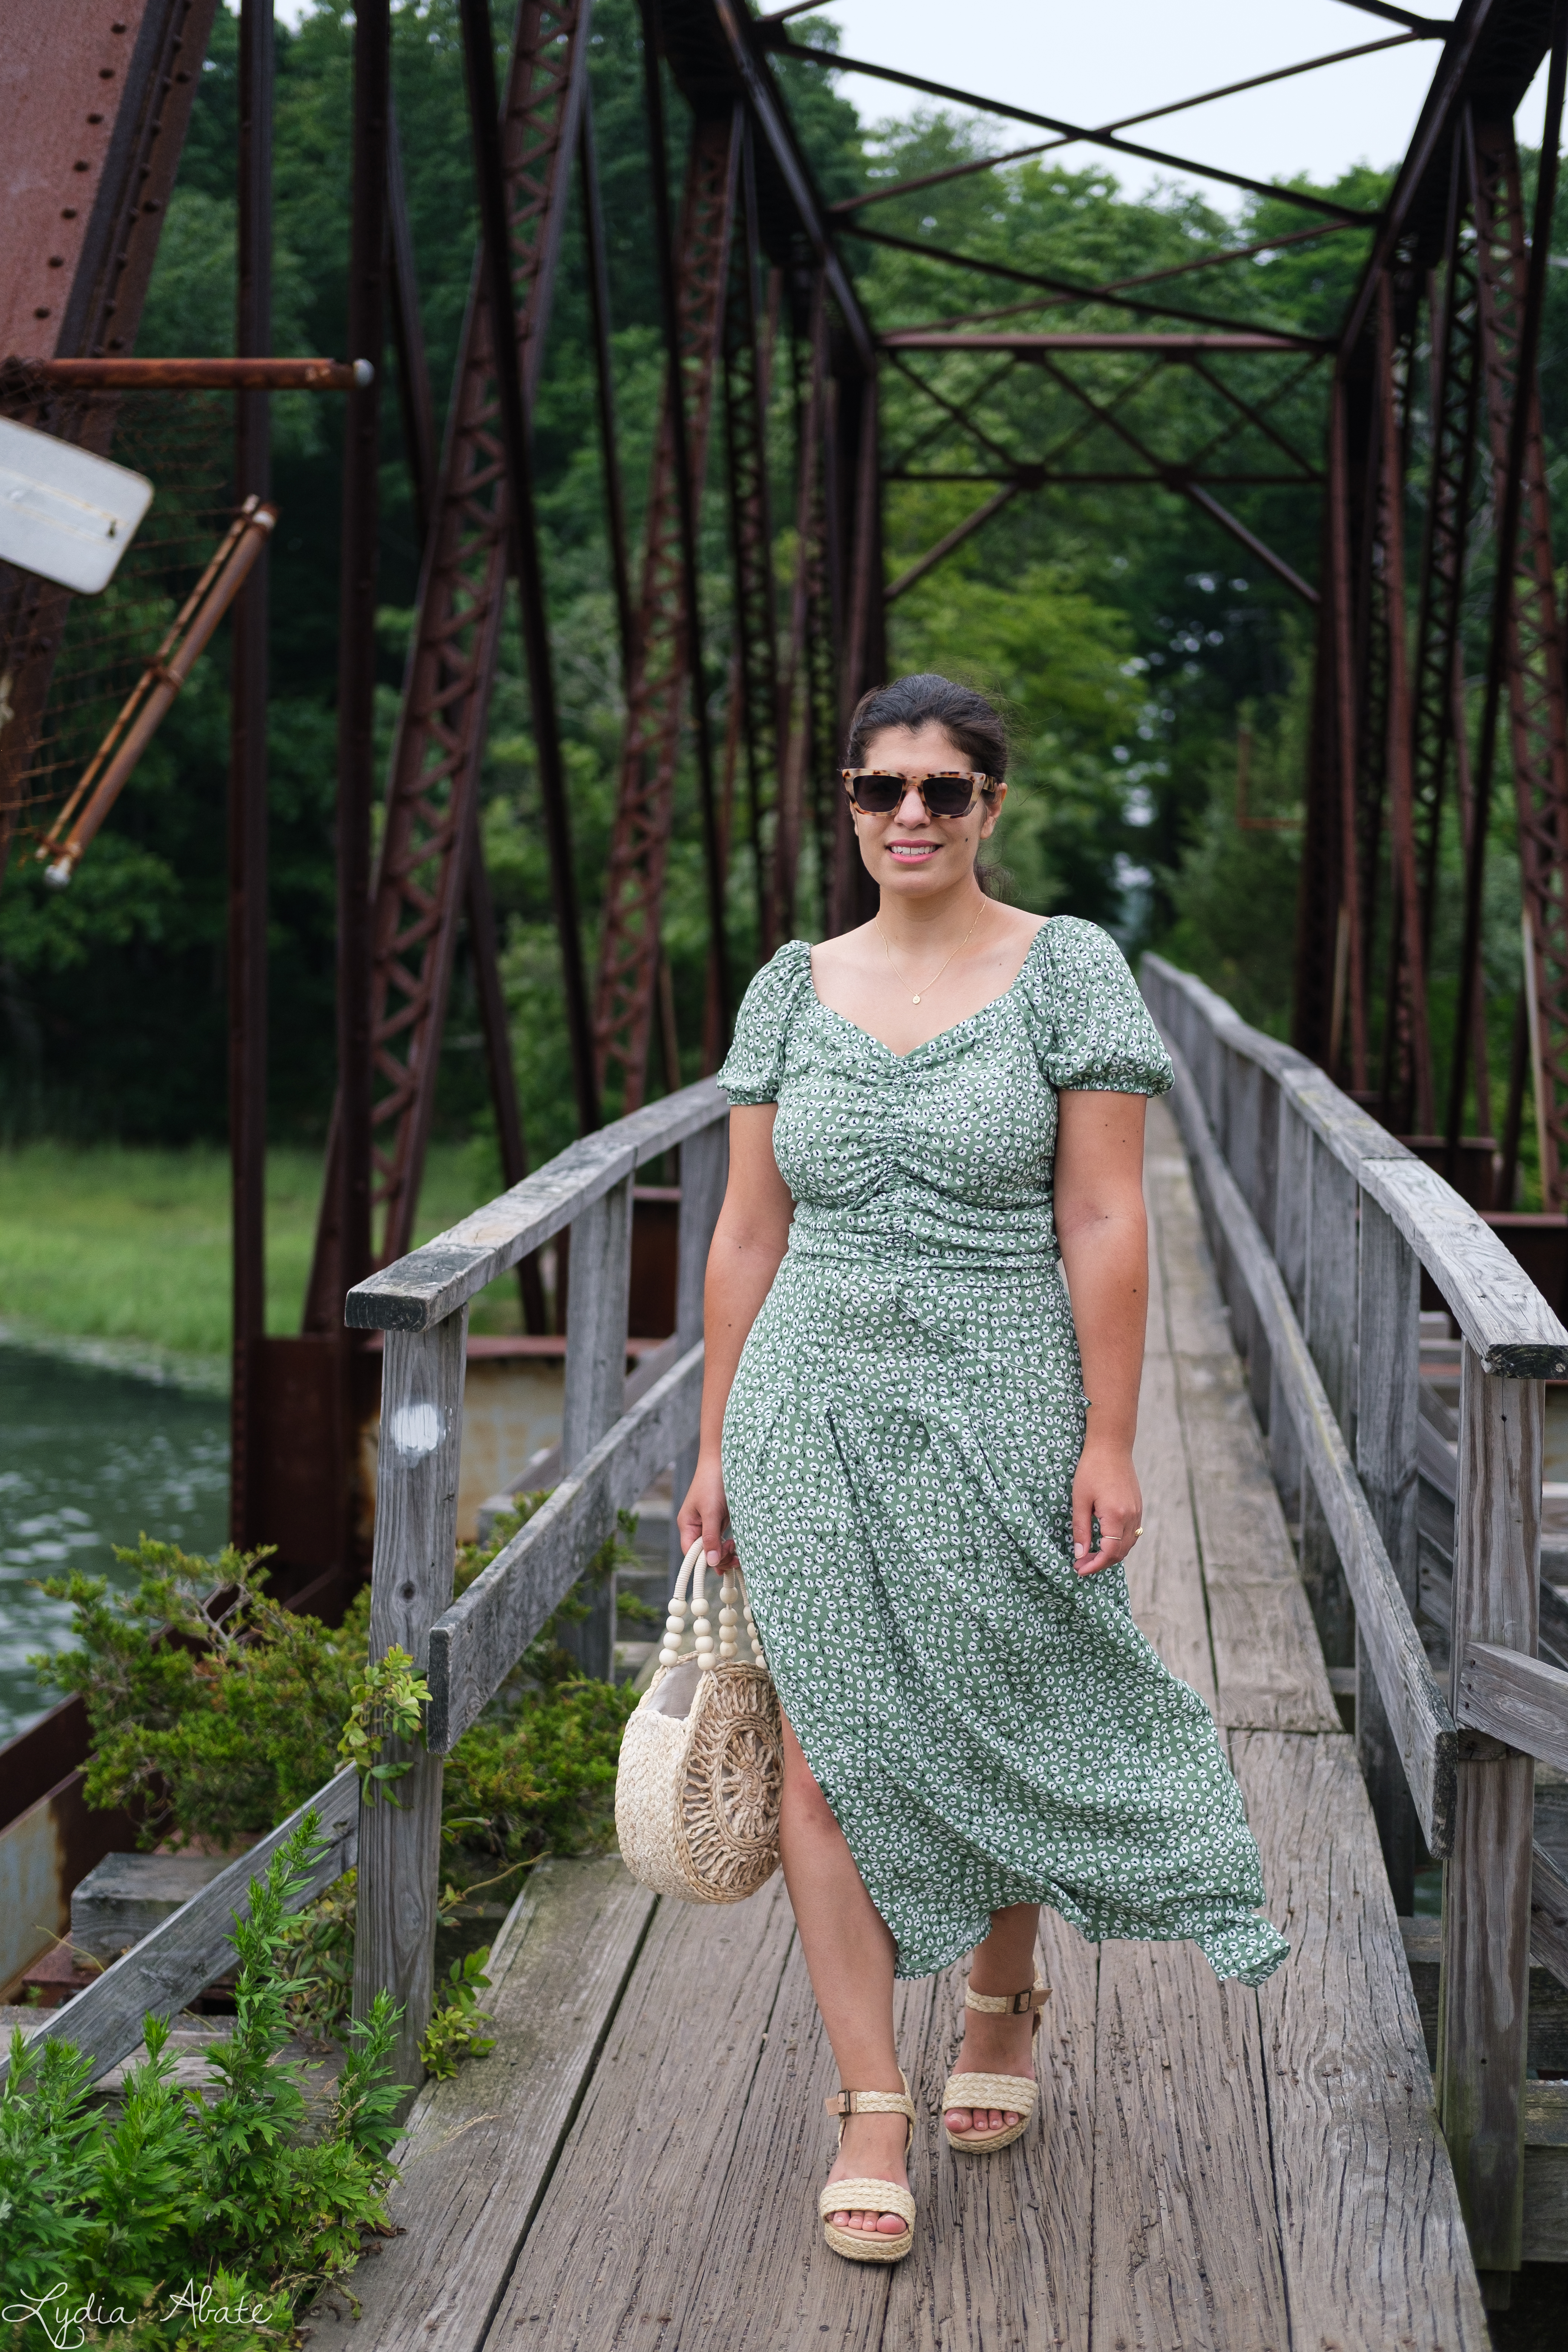 green floral skirt and top, round raffia bag, sandals, hair scarf-5.jpg